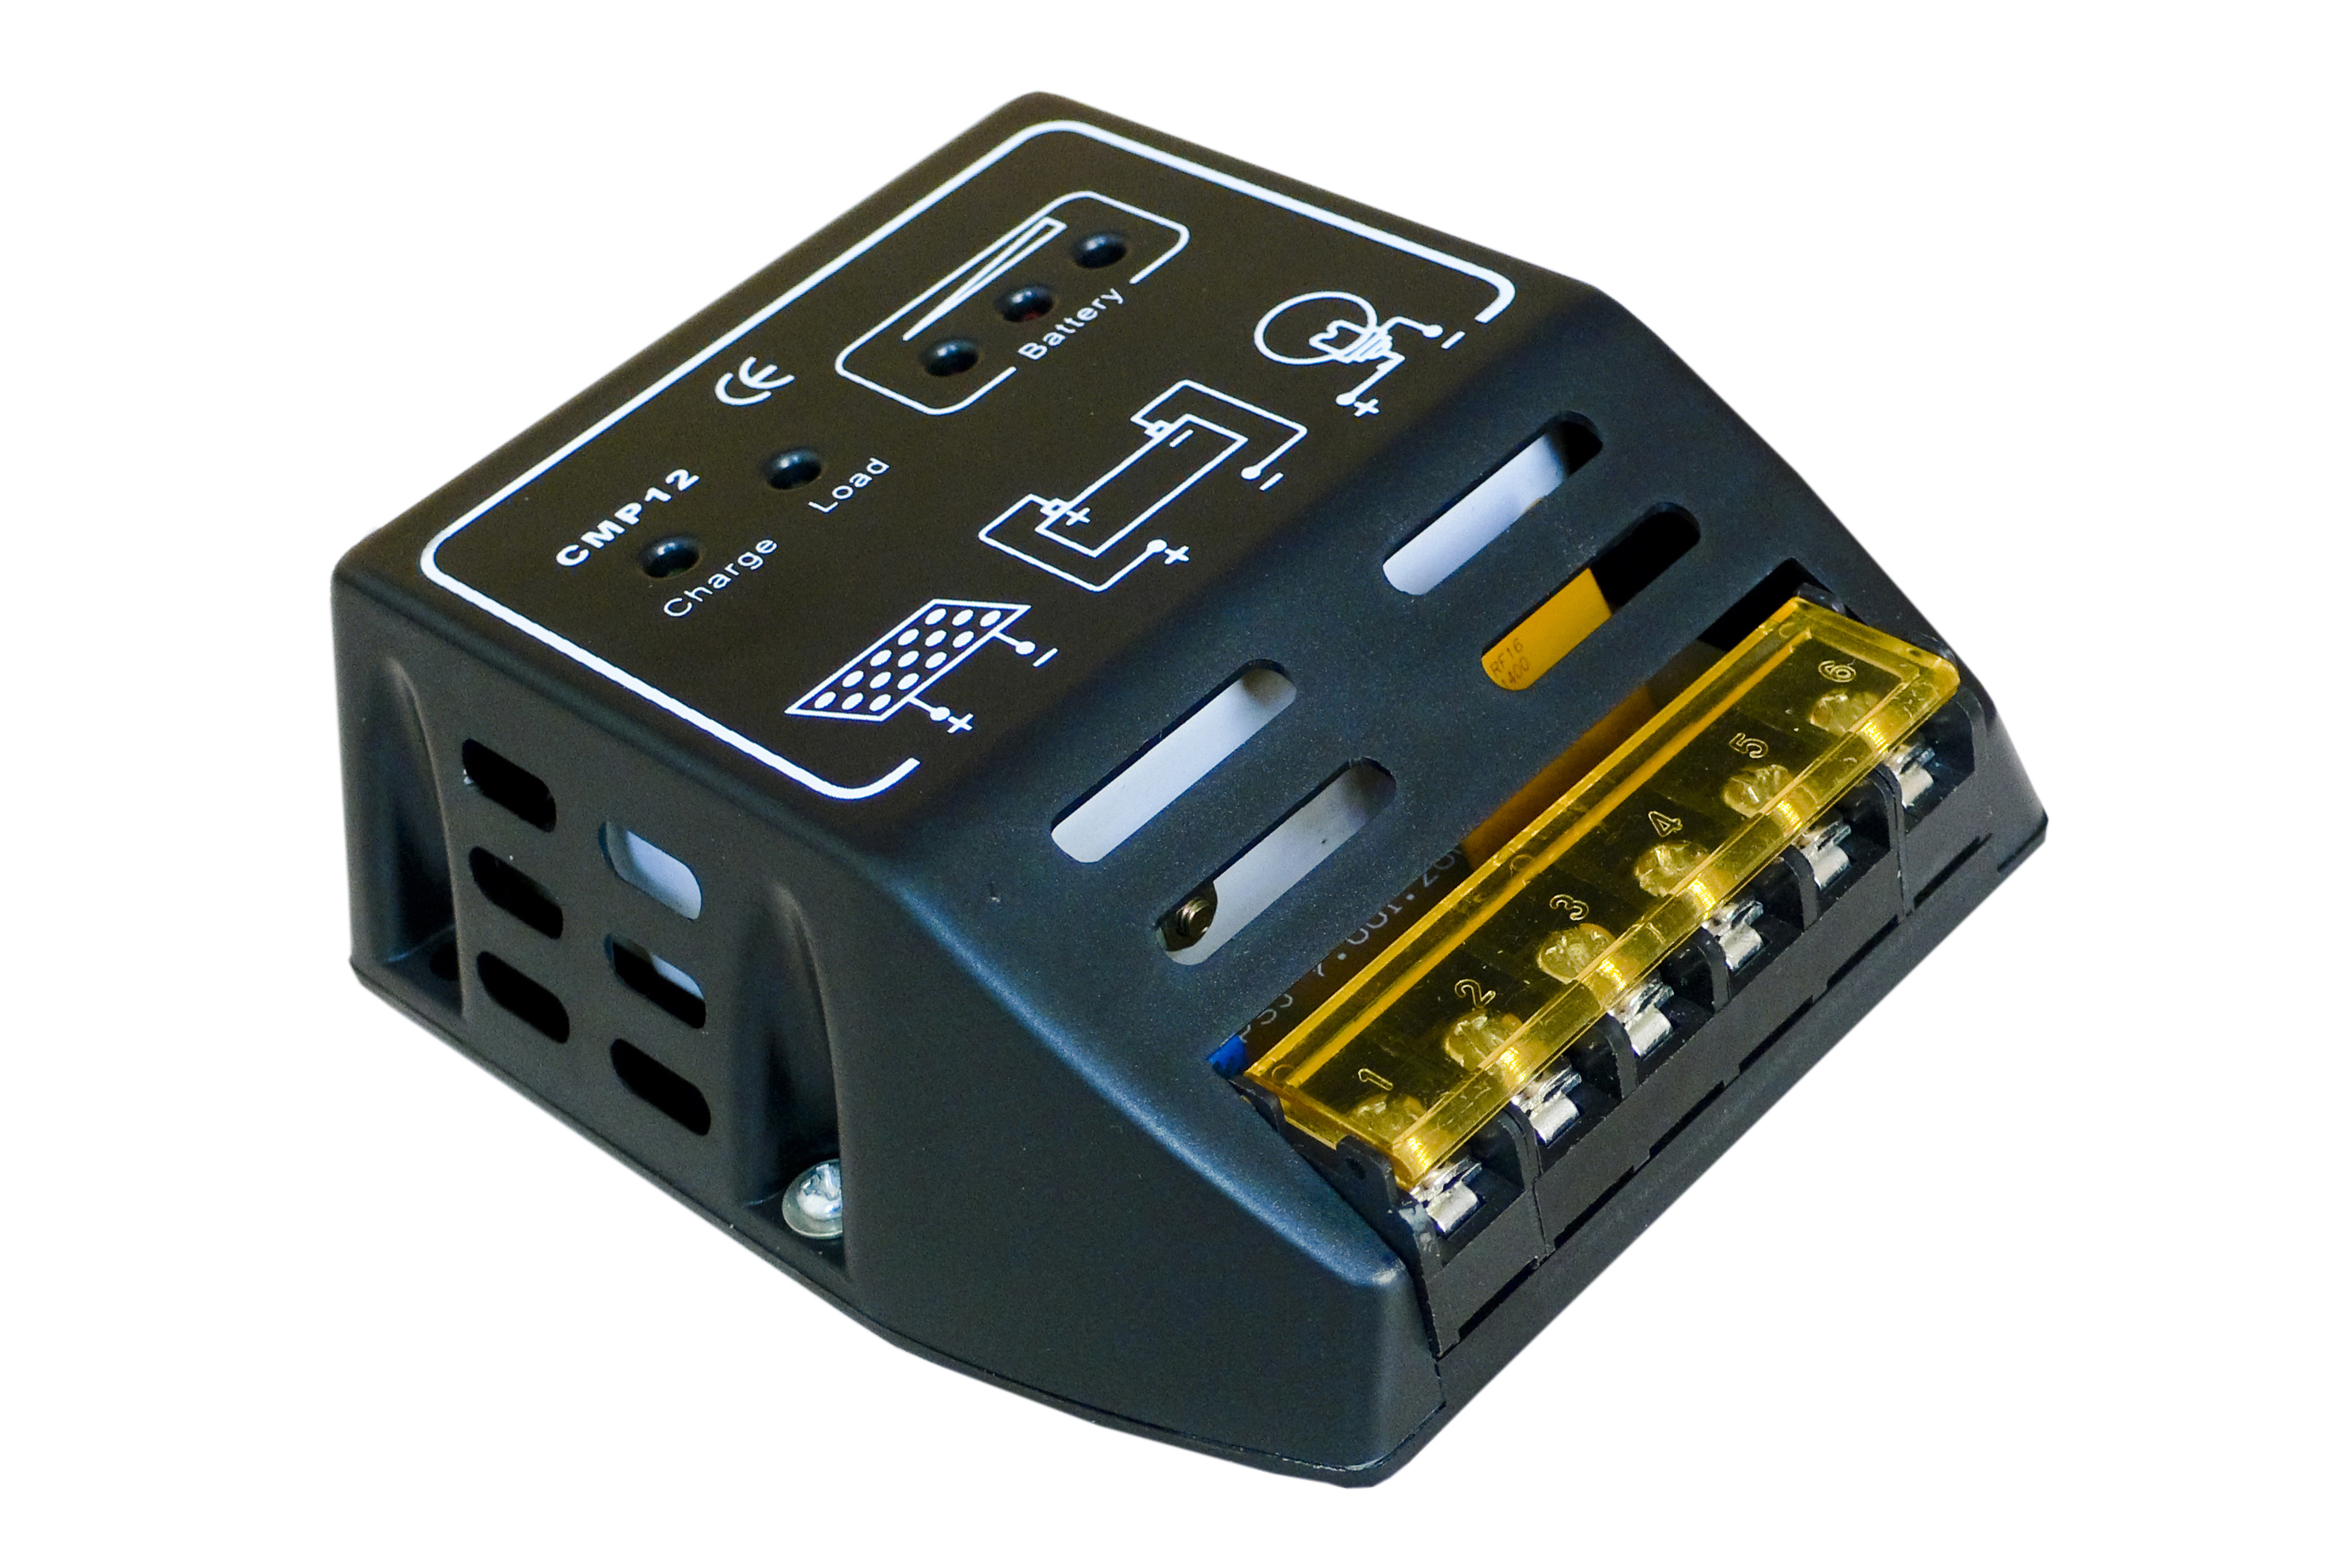 Cmp12 solar charge controller